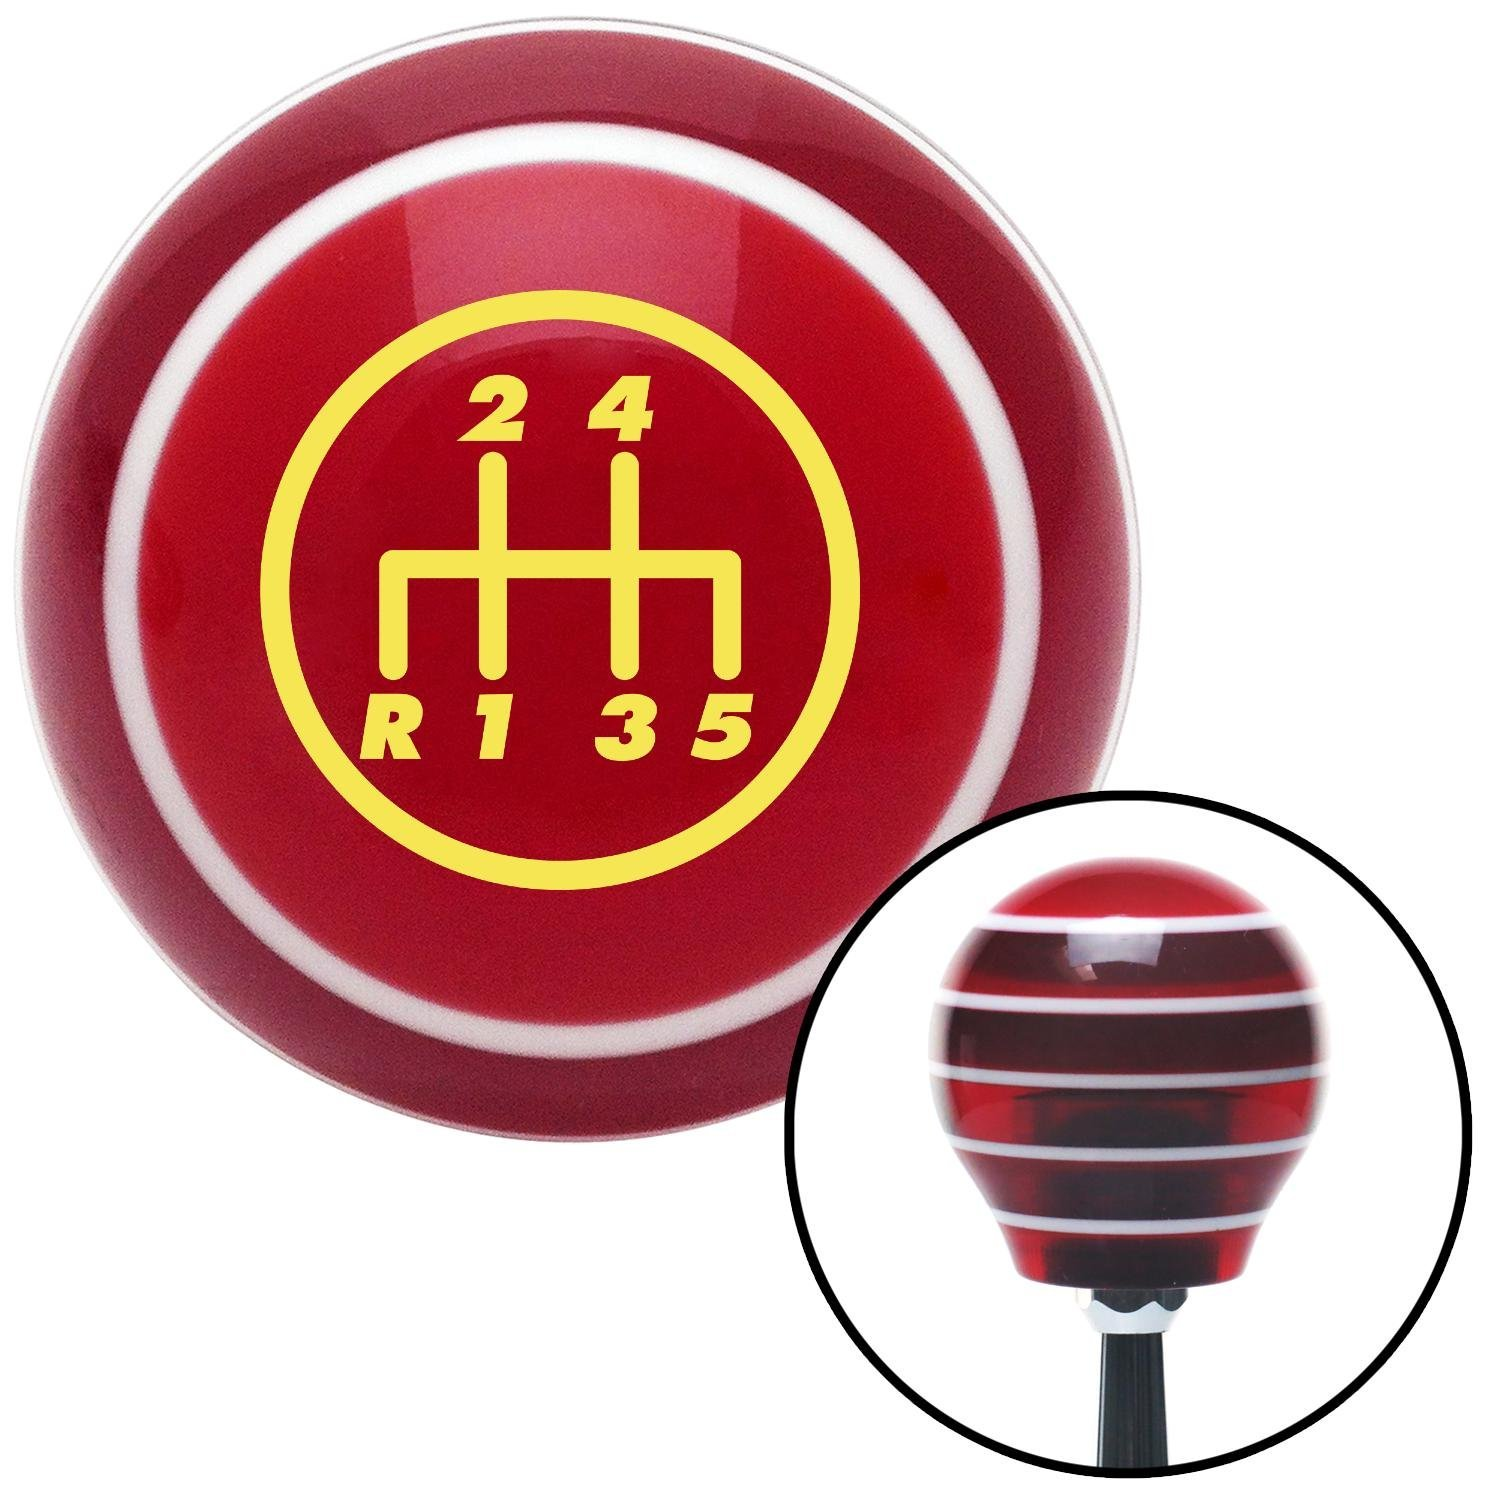 American Shifter 117316 Red Stripe Shift Knob with M16 x 1.5 Insert Yellow 5 Speed Shift Pattern - 5DR-RDL